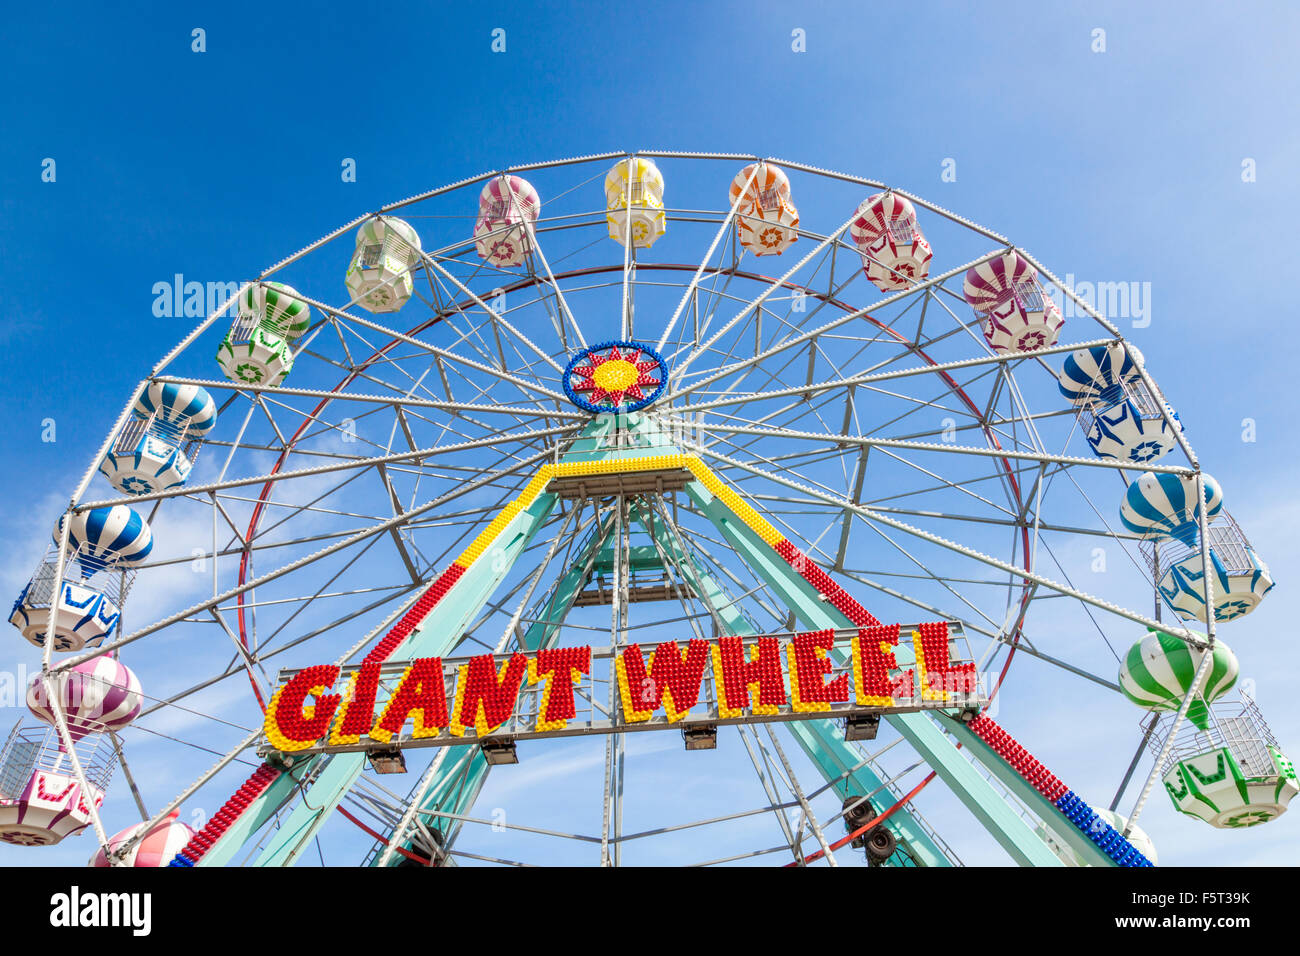 the giant wheel a